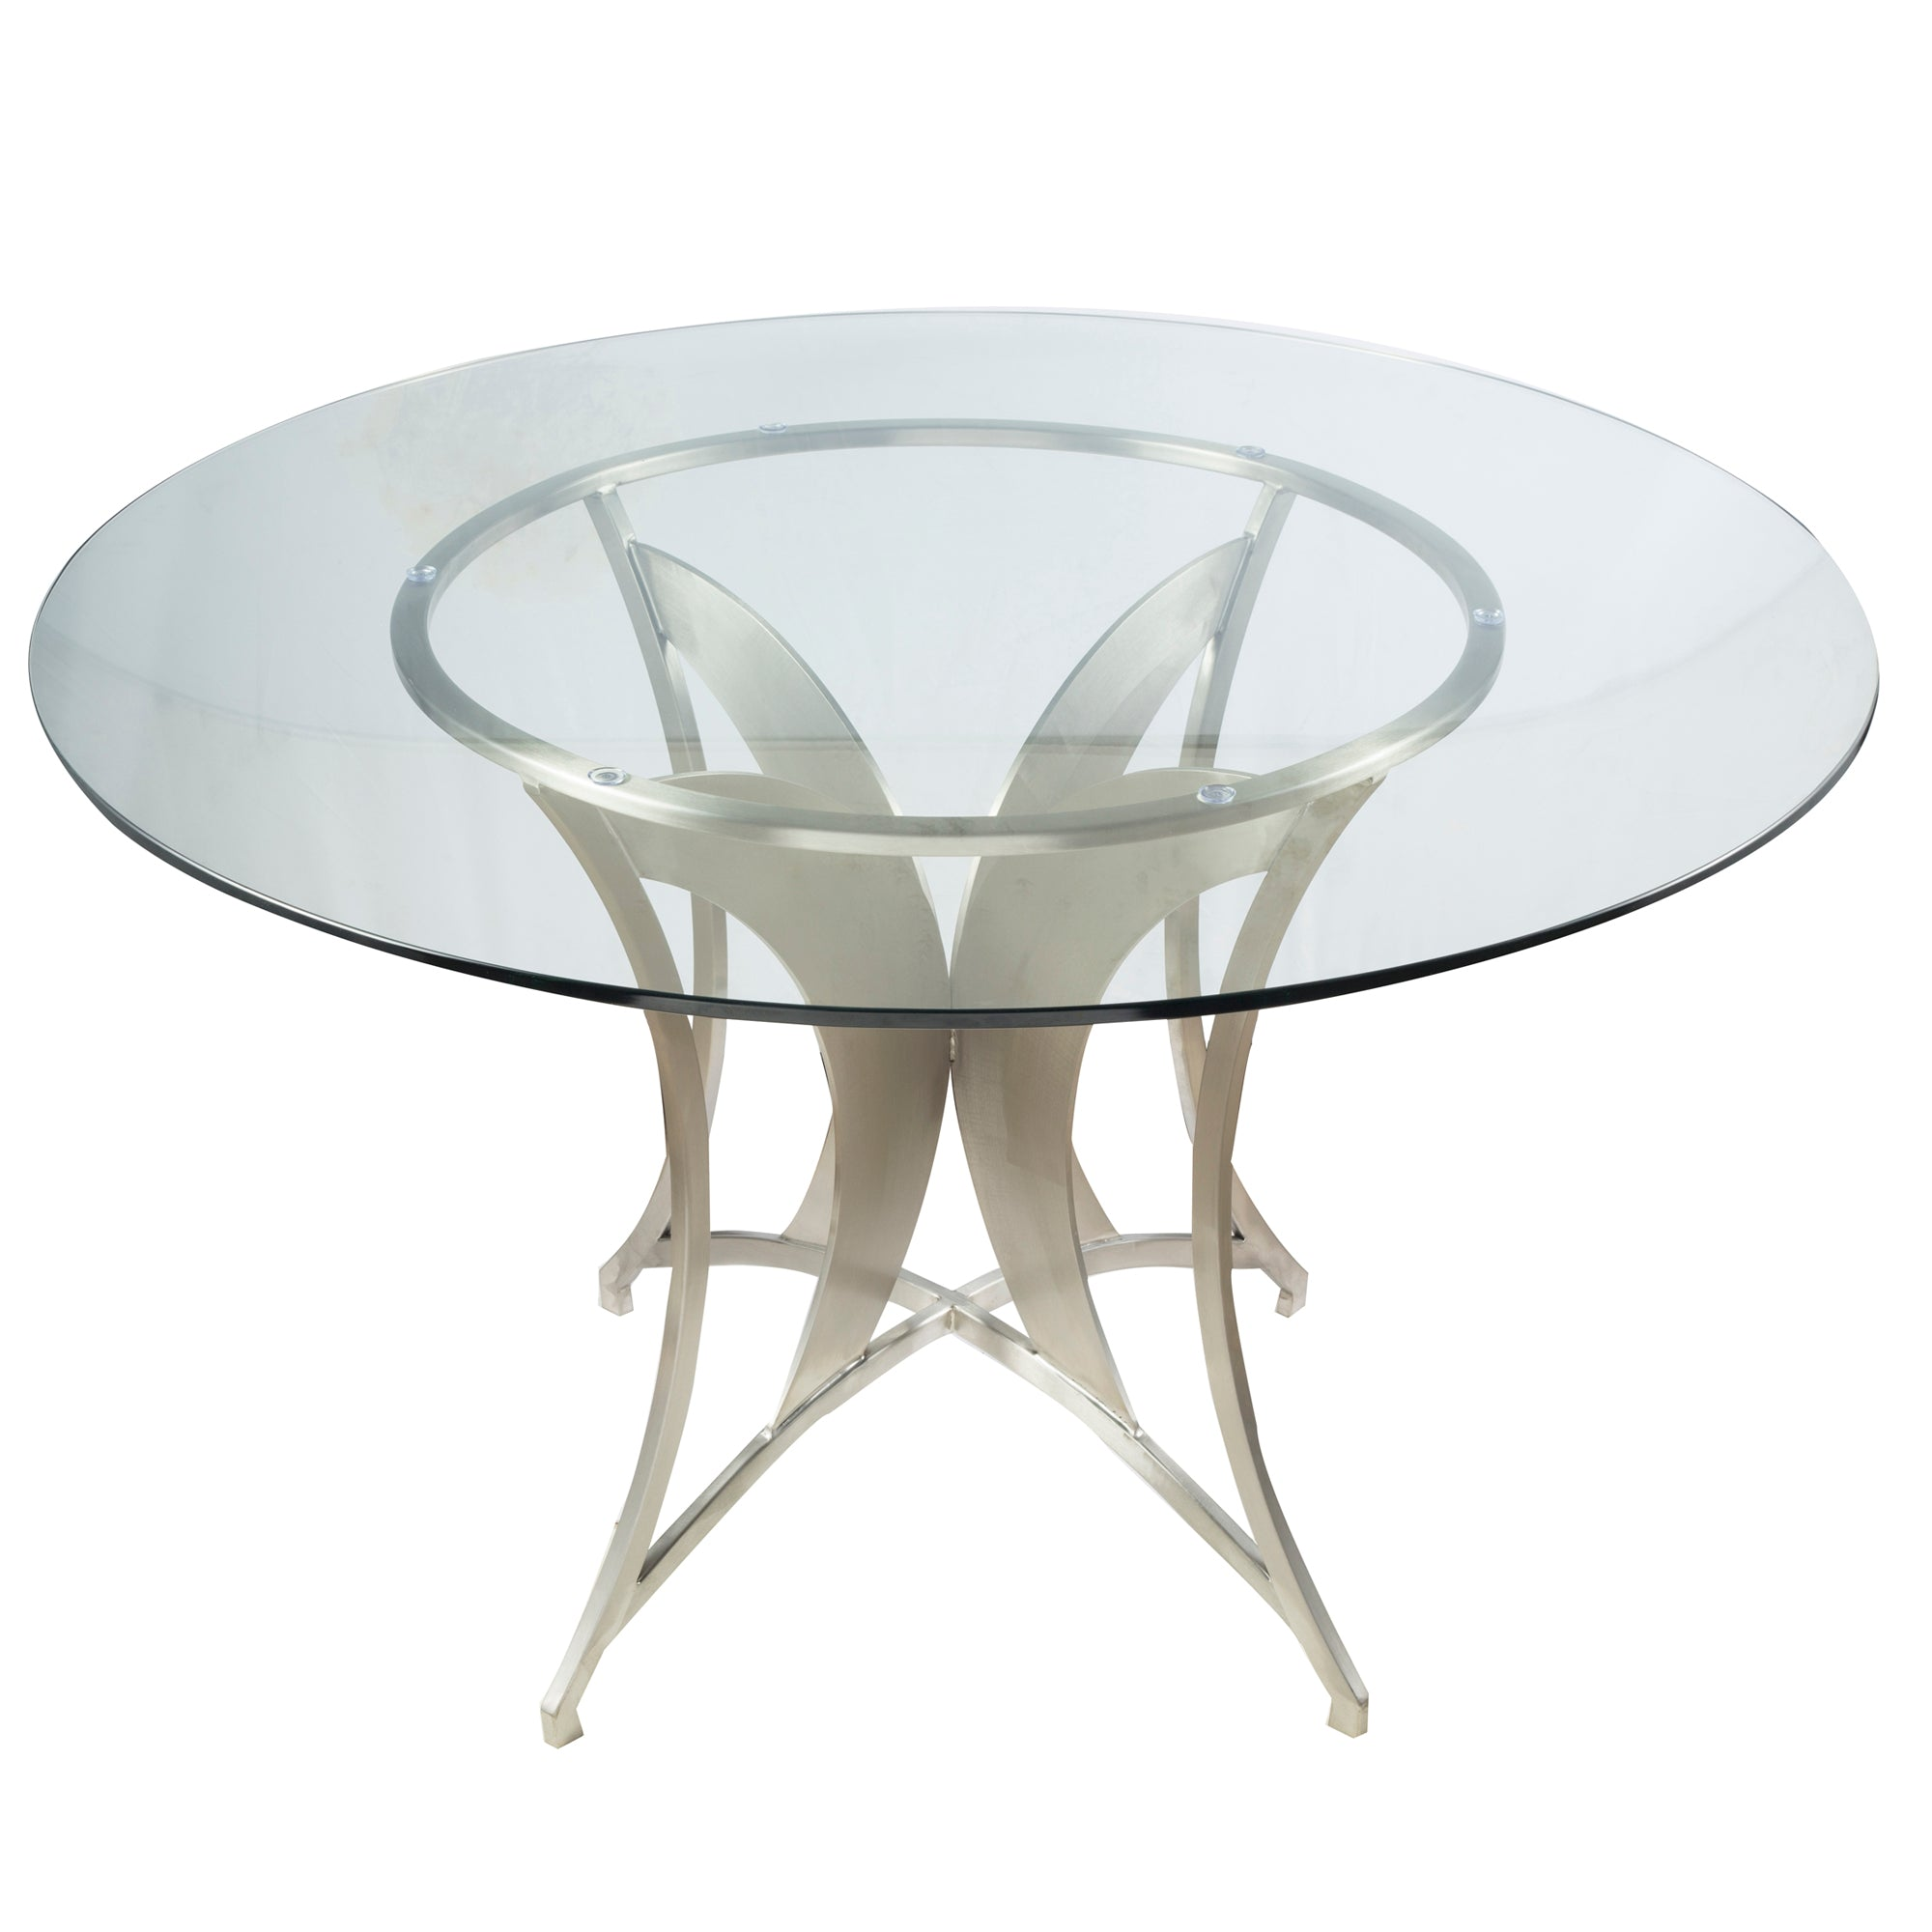 Stainless | Modern | Clear | Steel | Glass | Table | Live | Dine